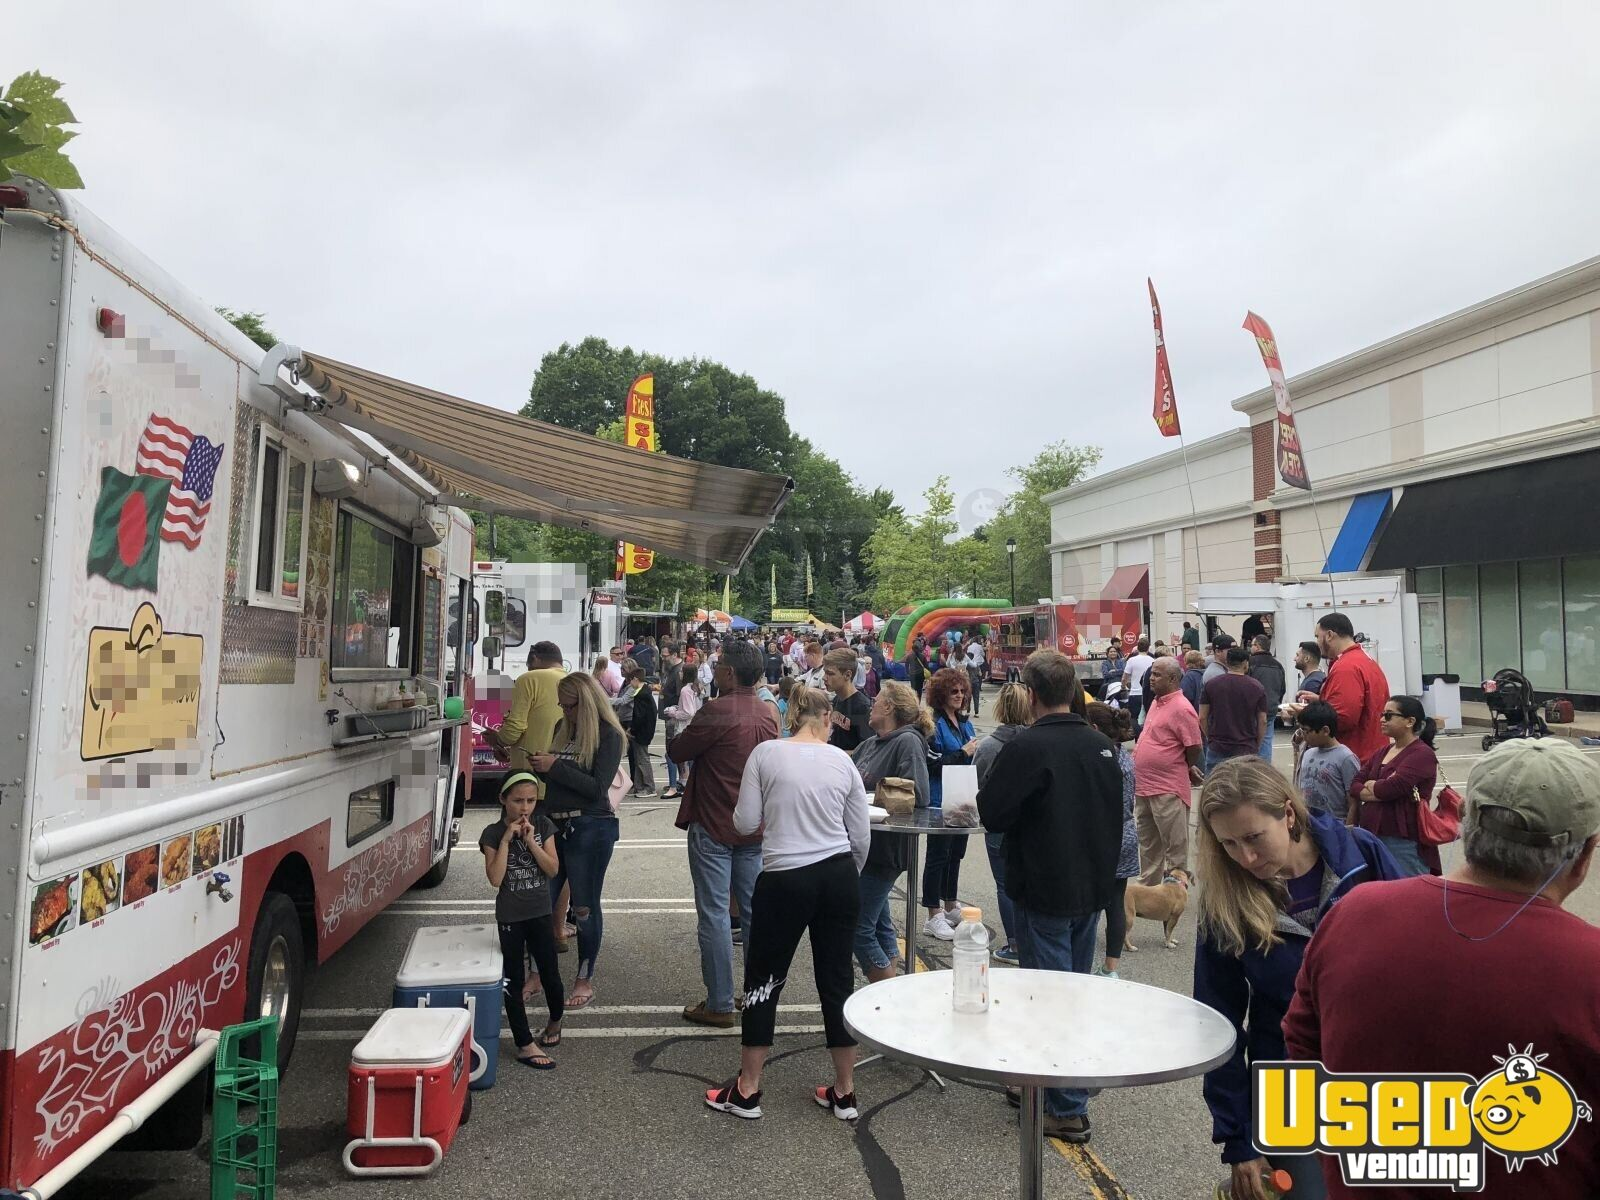 1990 Chevy P350 All-purpose Food Truck Deep Freezer Connecticut for Sale - 6